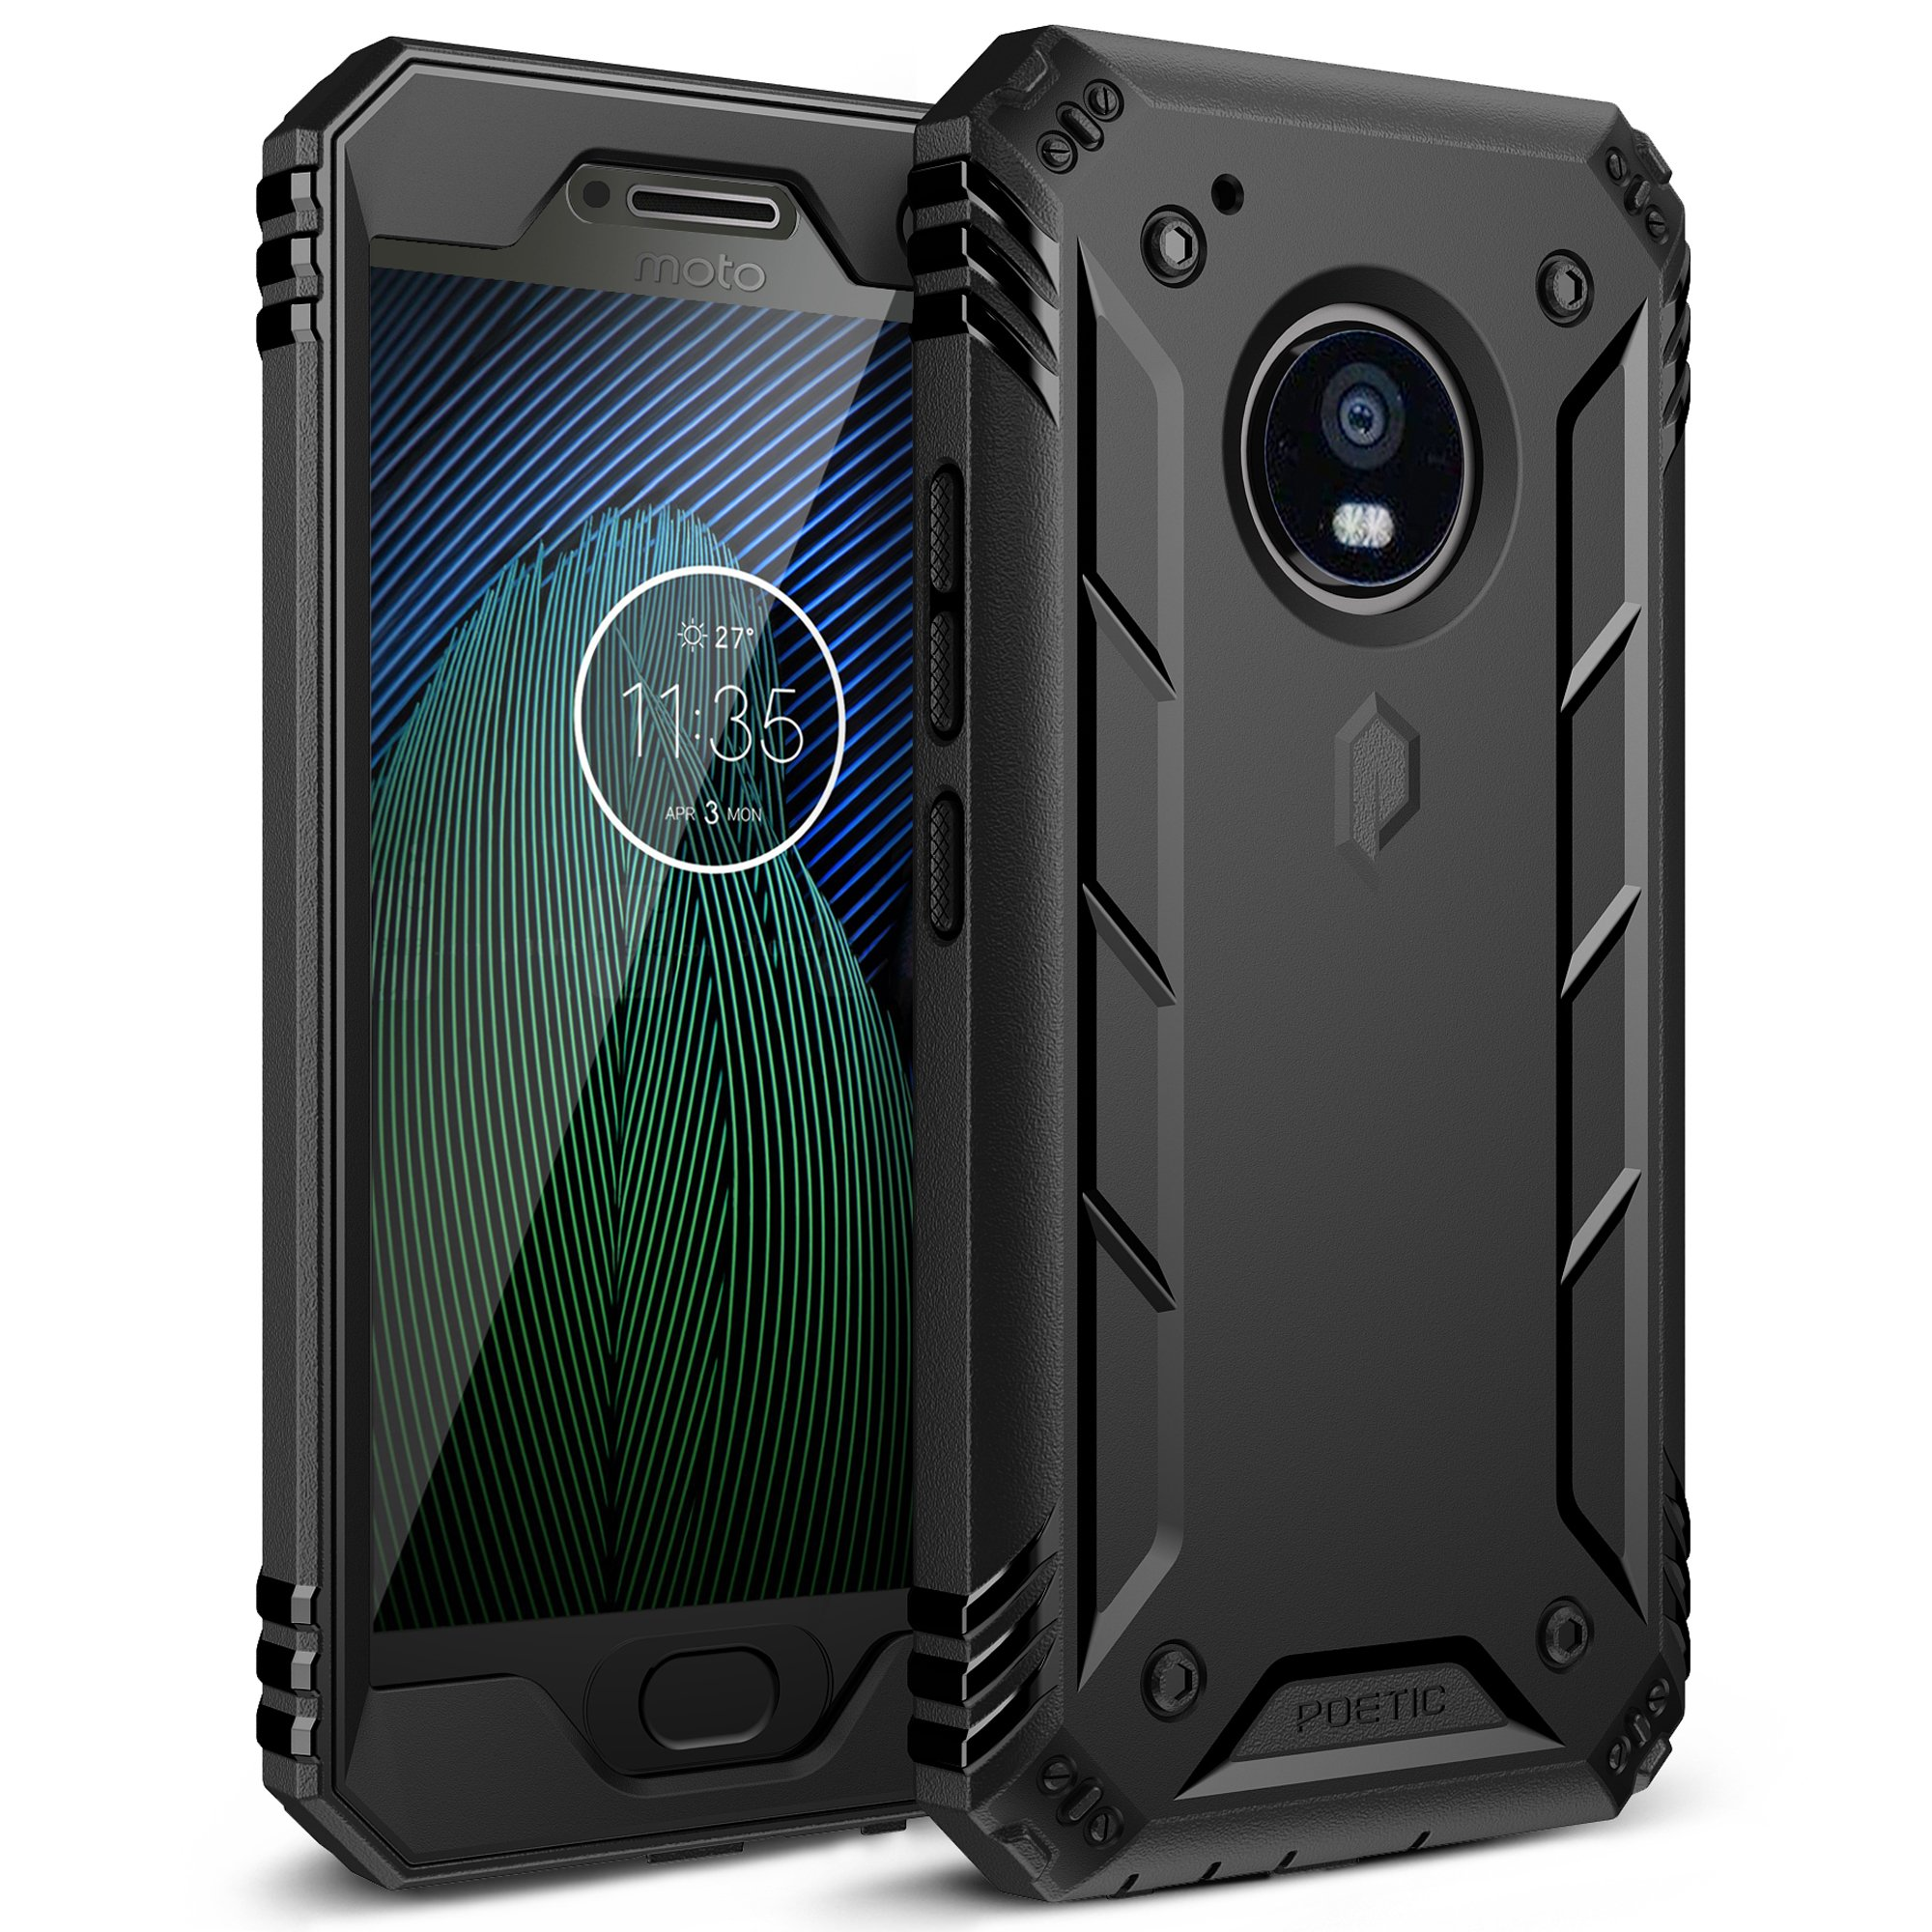 Poetic Moto G5 Plus Rugged Case, Revolution Full-Body with Hybrid Heavy Duty Protection [Built-in Screen Protector] for Motorola Moto G5 Plus (2017) Black by Poetic